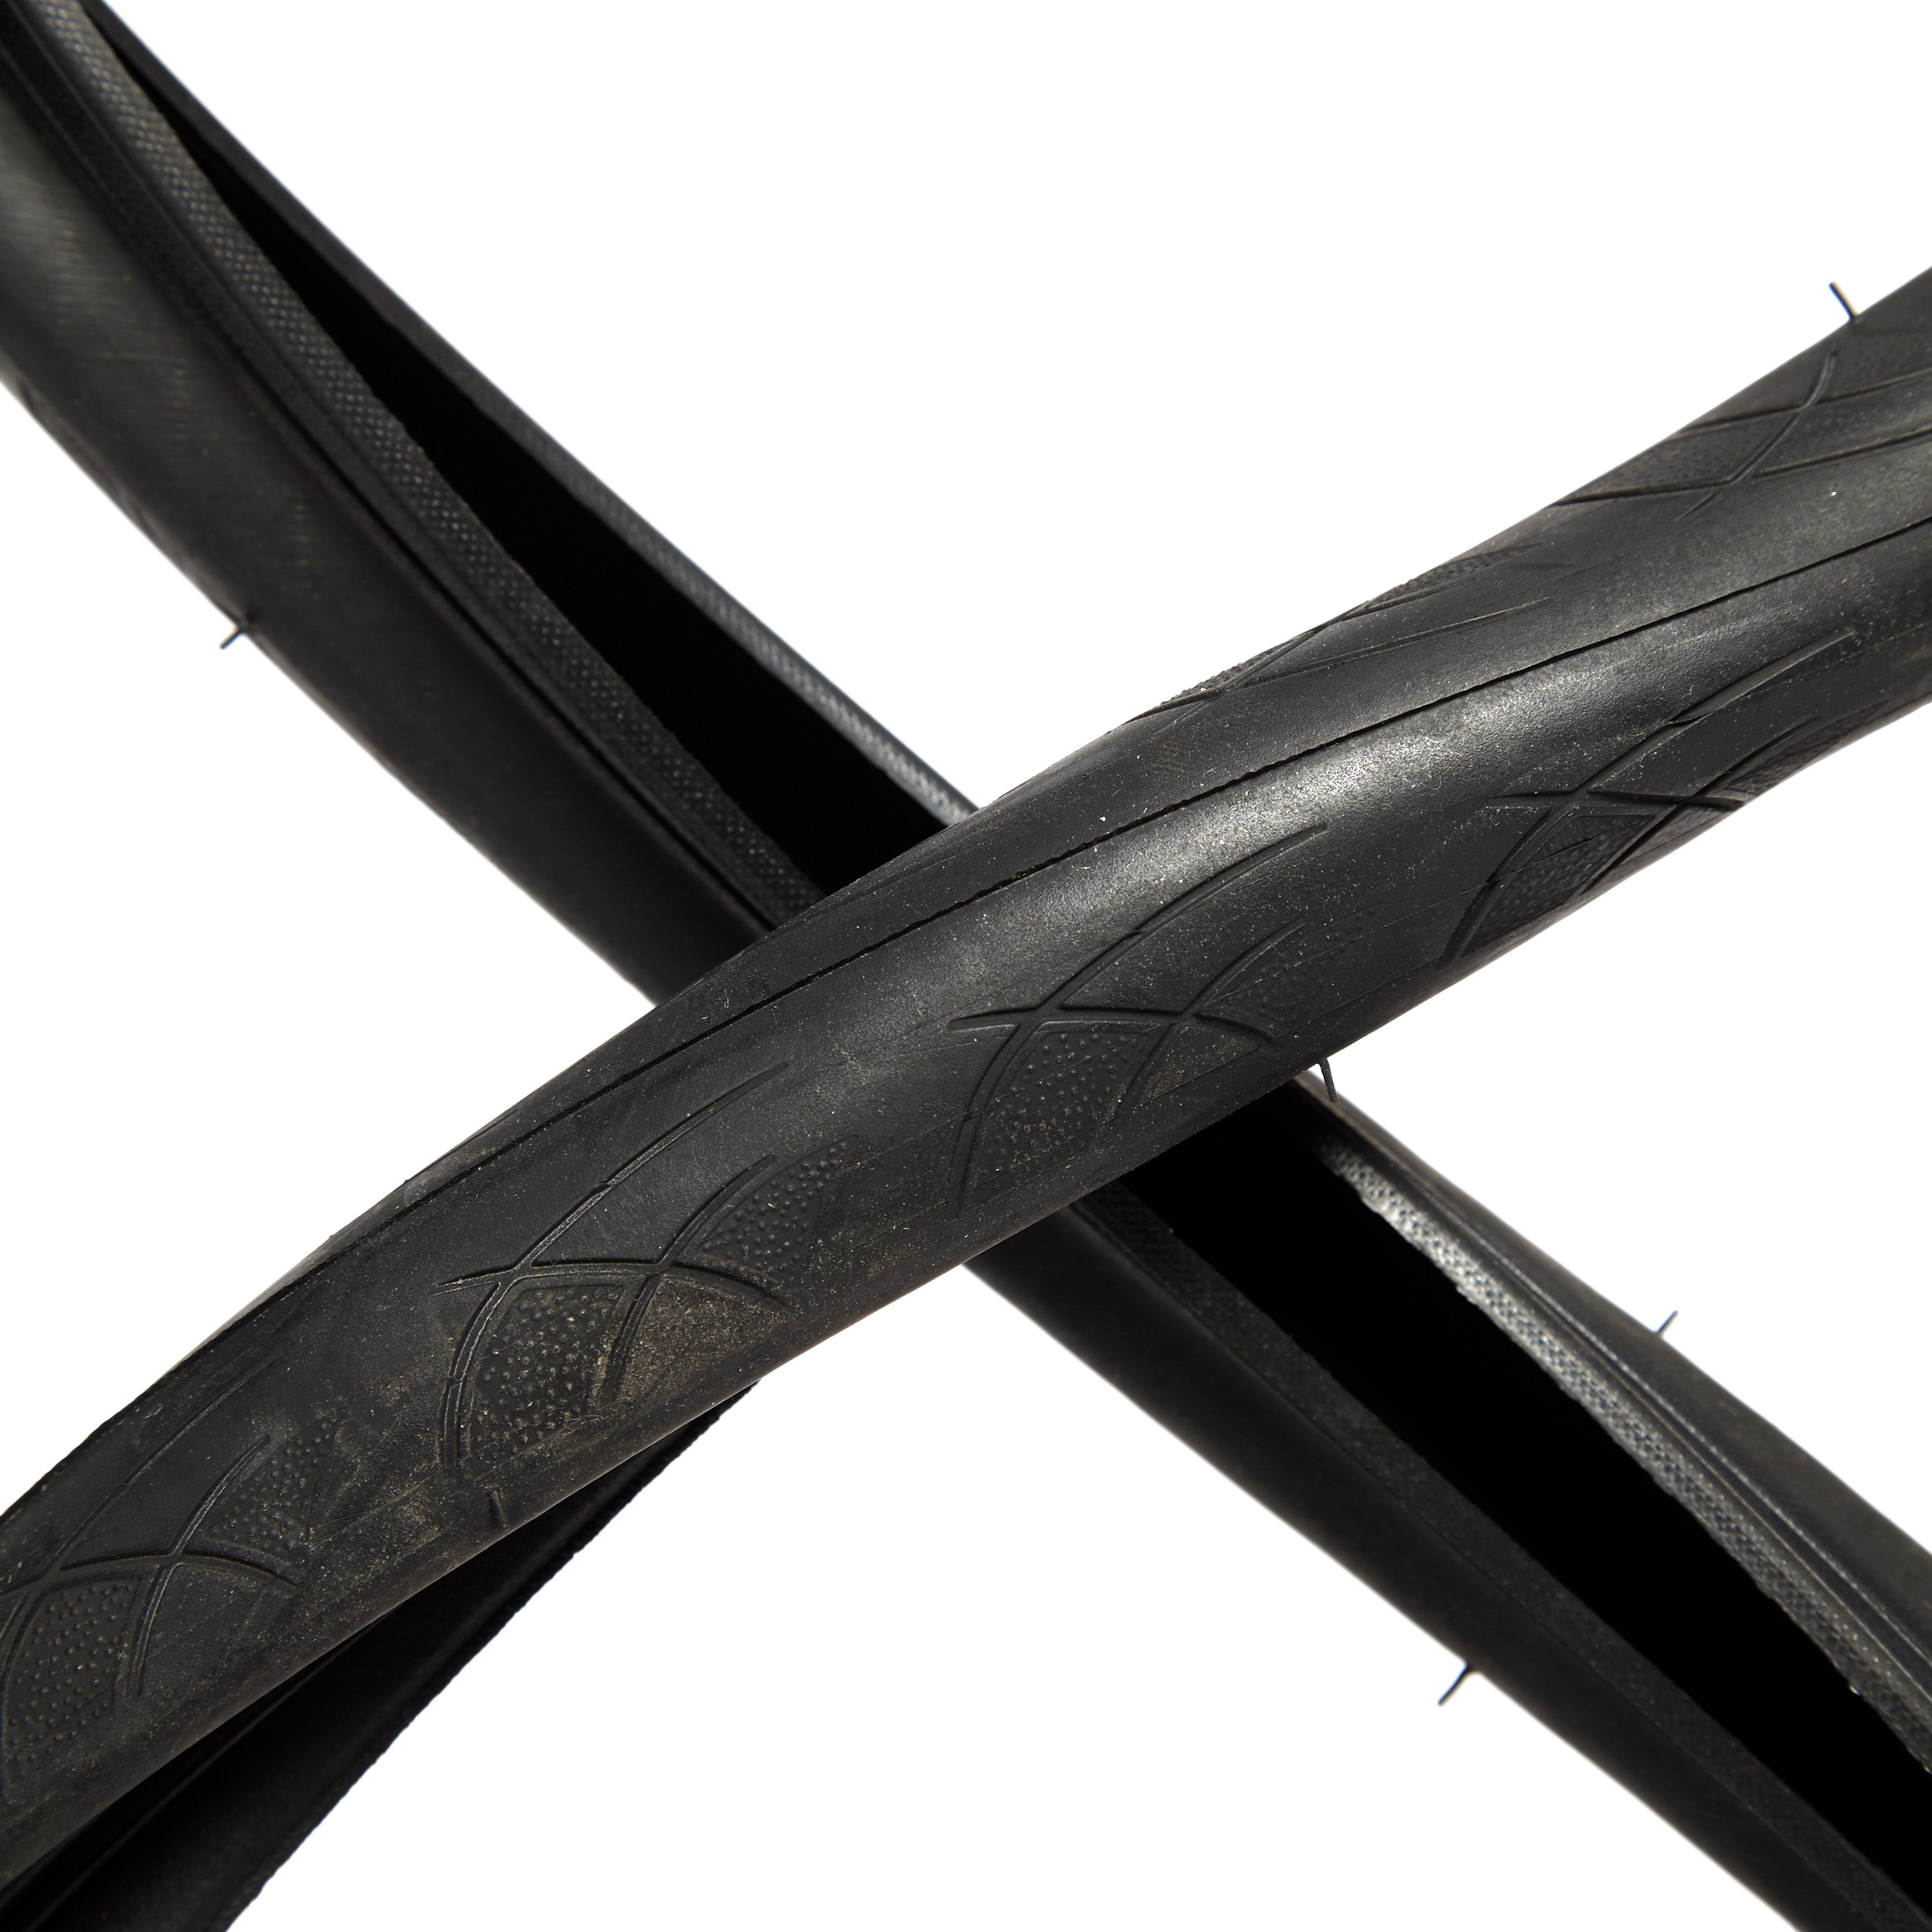 BONTRAGER 700 x 32C AW1 Hard-Case Lite Wired Road Tyre